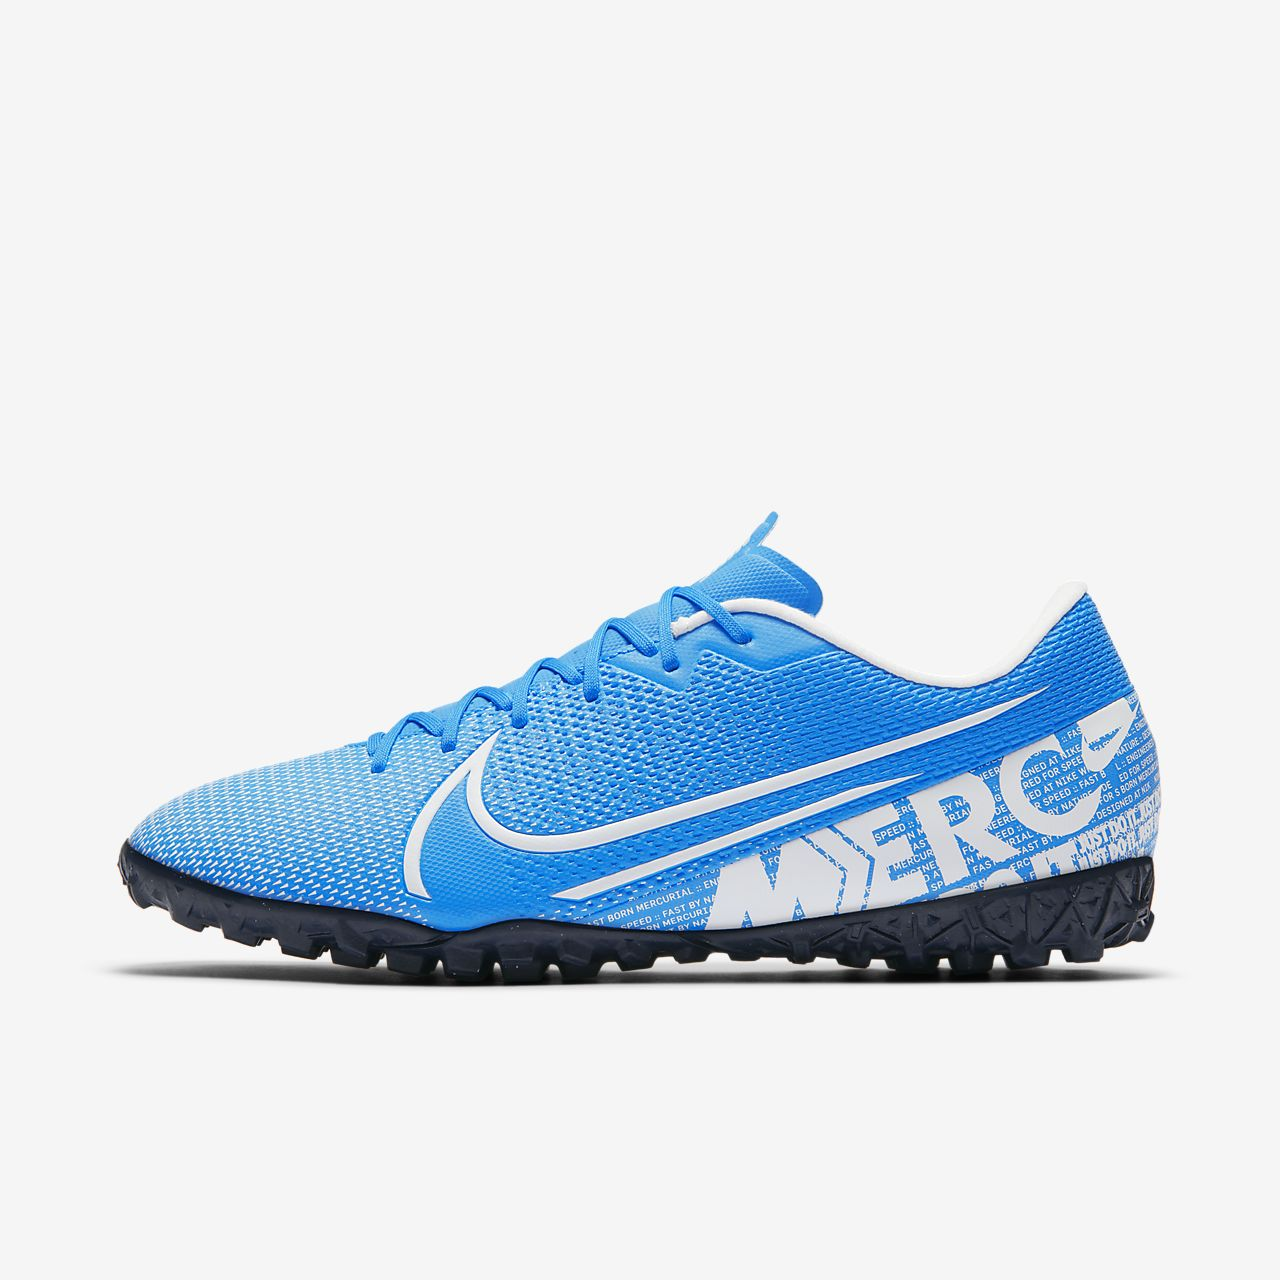 Chaussure de football pour surface synthétique Nike Mercurial Vapor 13 Academy TF